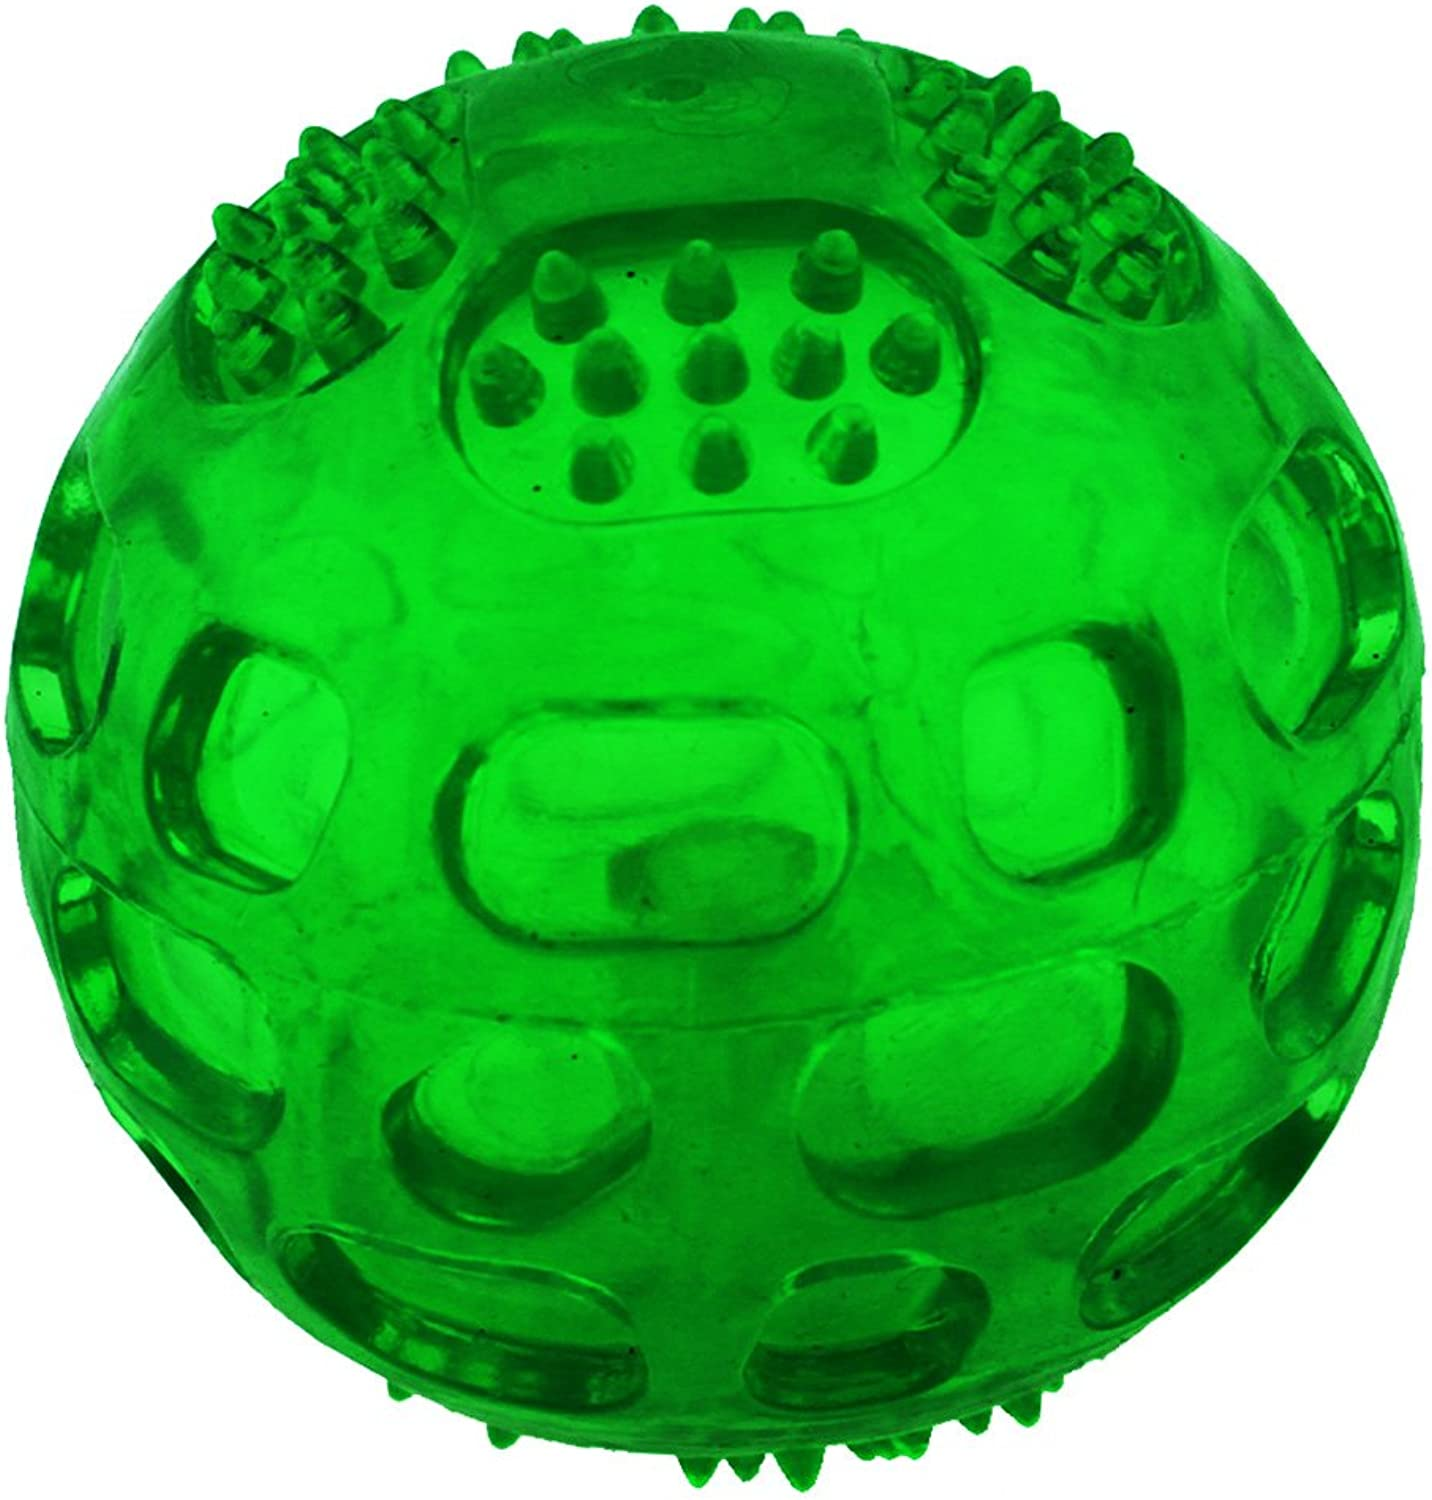 Aduck Pet Puppy Dog Squeaky Fetch Ball Toys [Meteorites Bouncy Series] Bite Resistant Squeeze Chew Toy for Aggressive Chewers [NonToxic Soft Rubber], Cute Crystal Green Ball Design  3.15 Inches